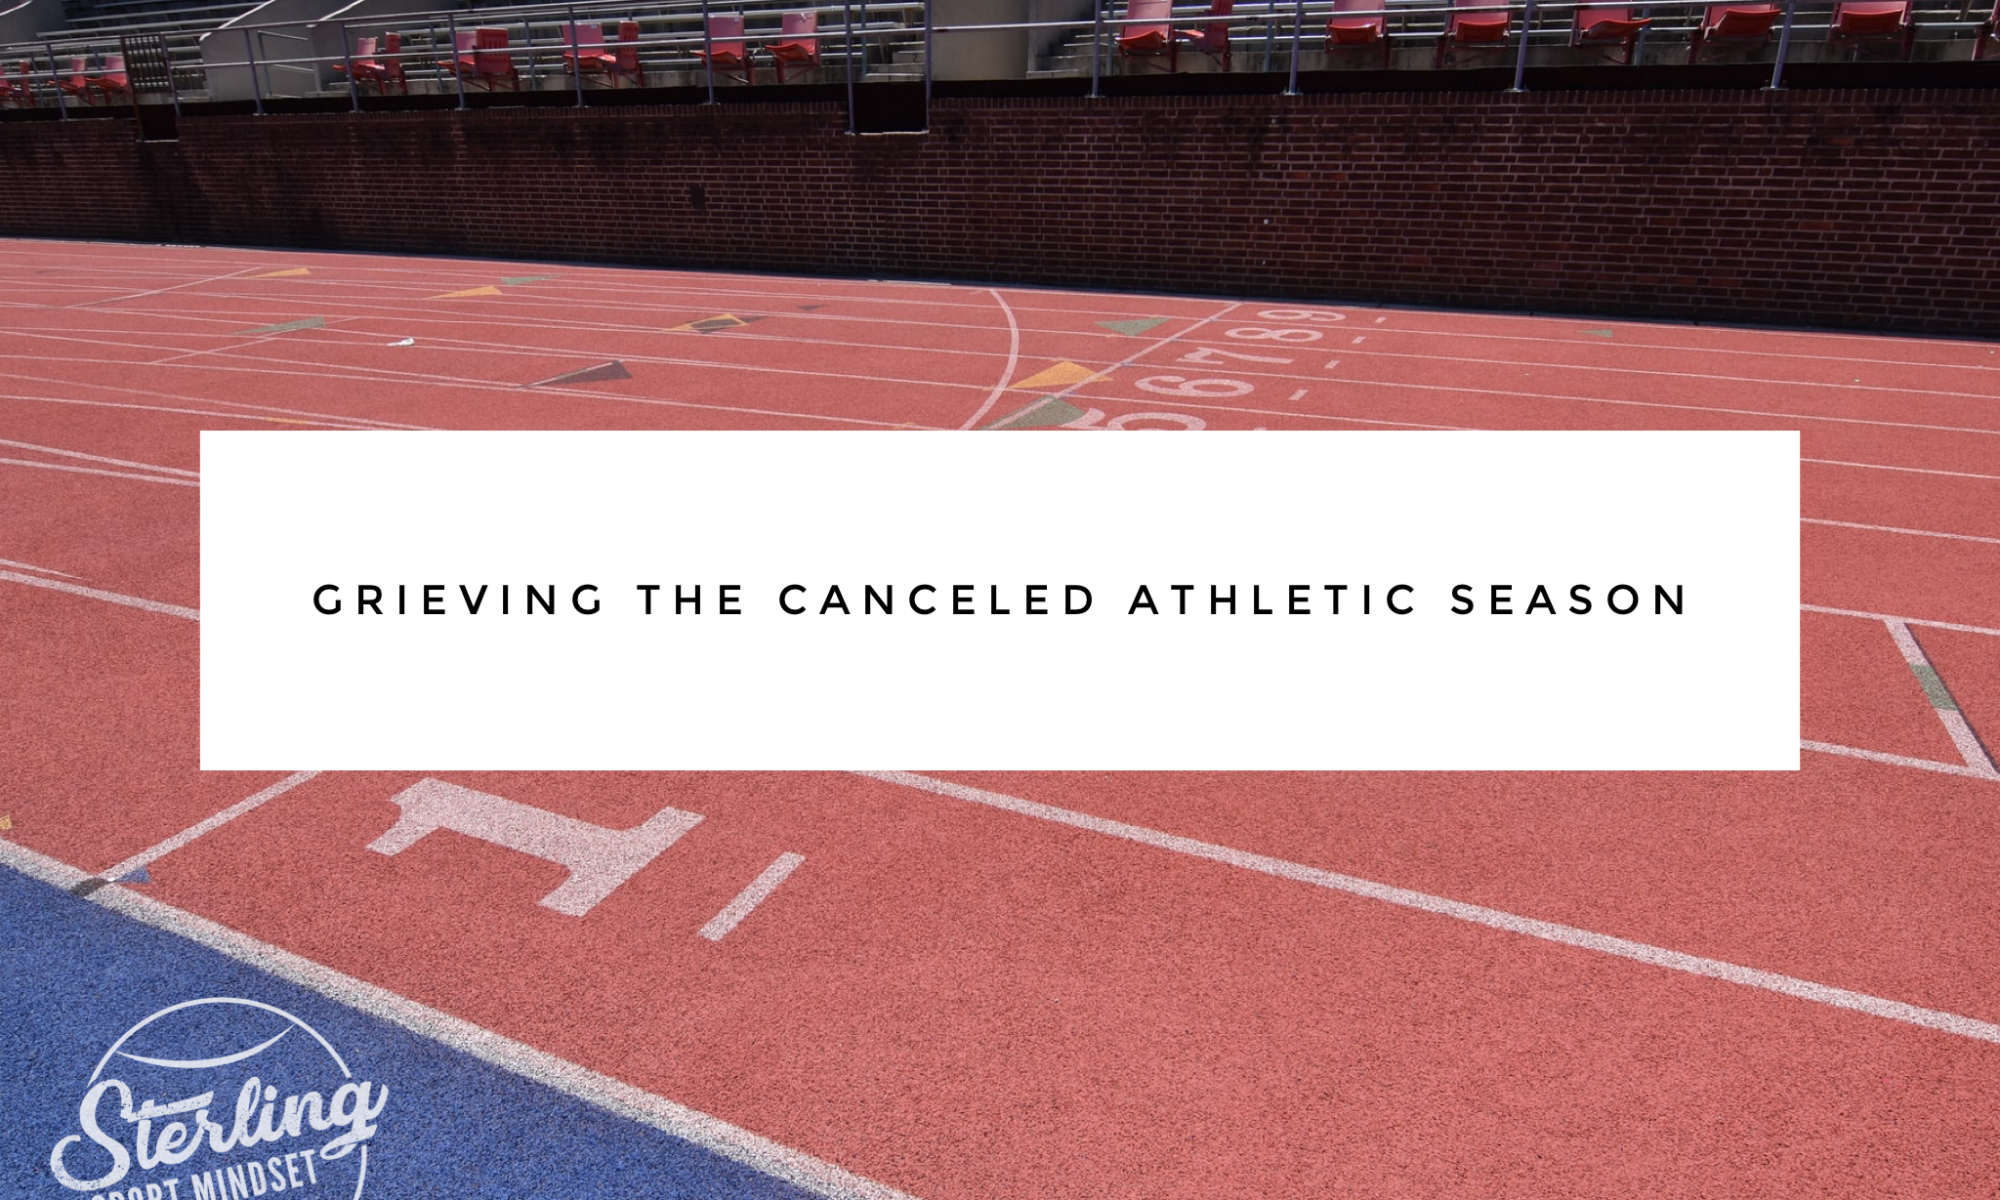 Grieving the Canceled Athletic Season